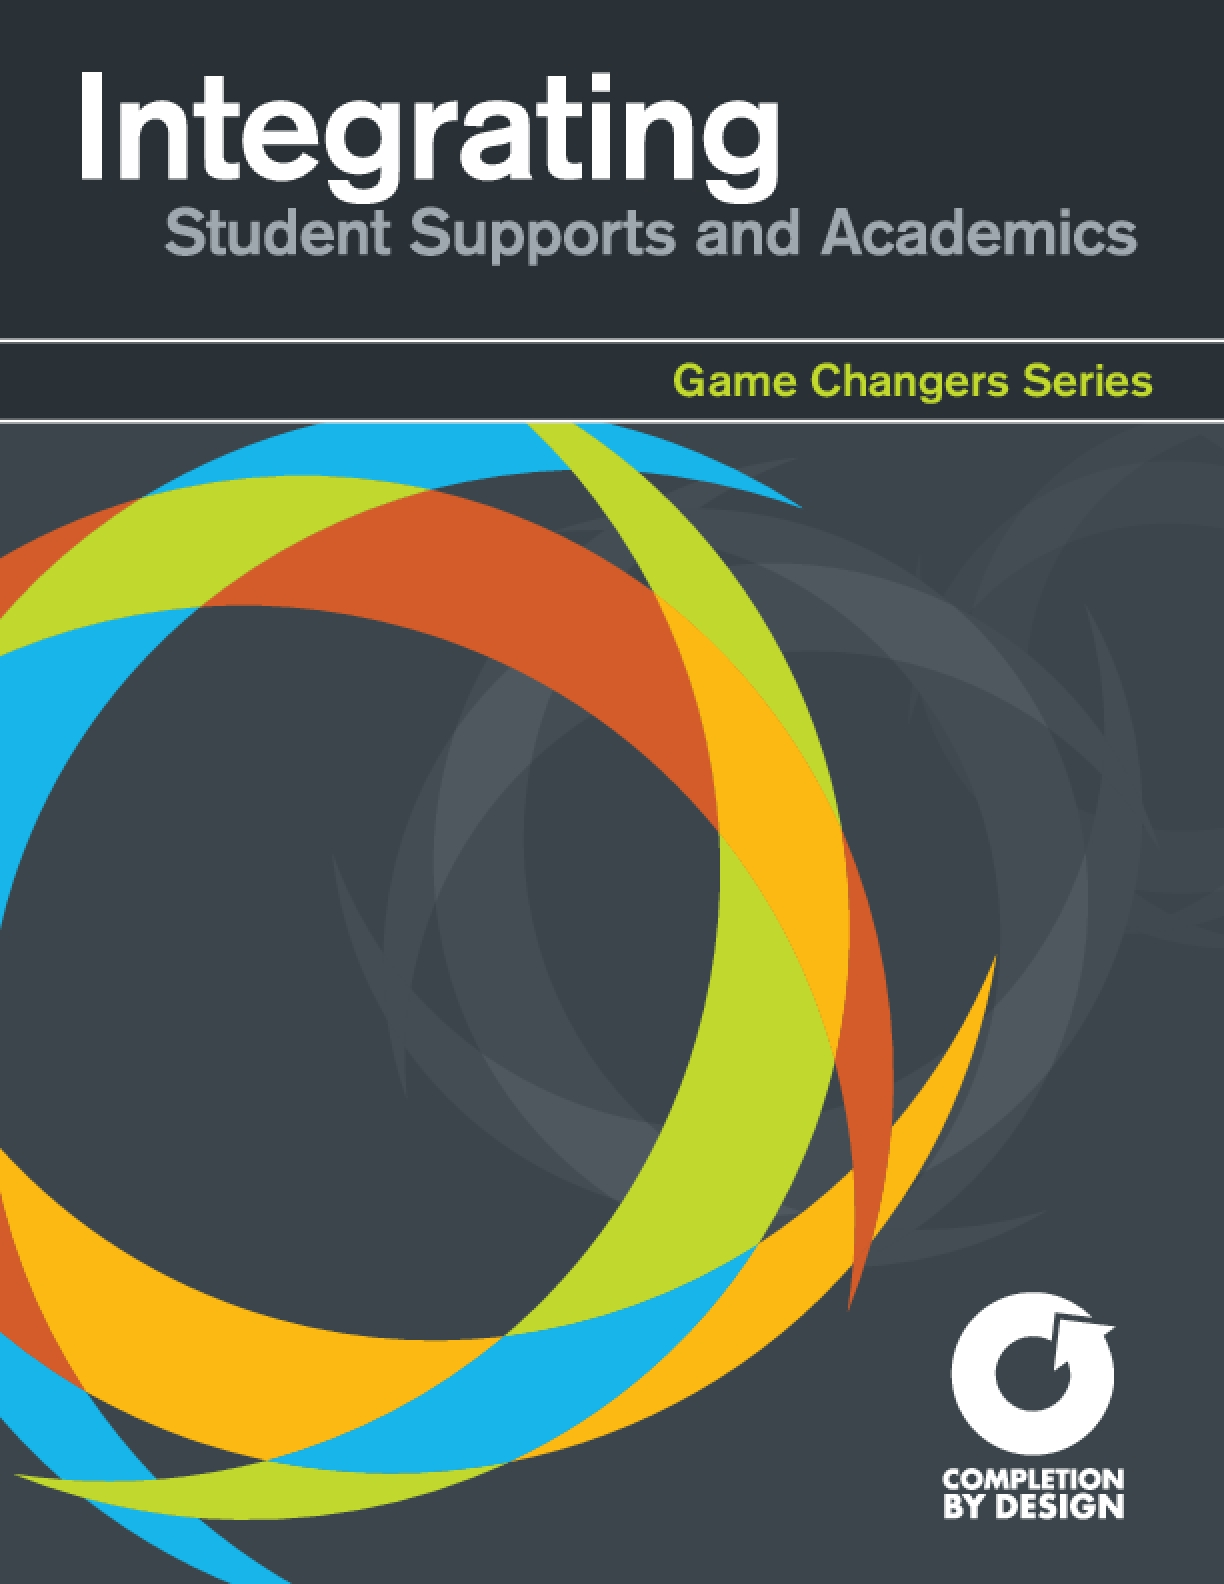 Integrating Student Supports and Academics: Game Changer Series